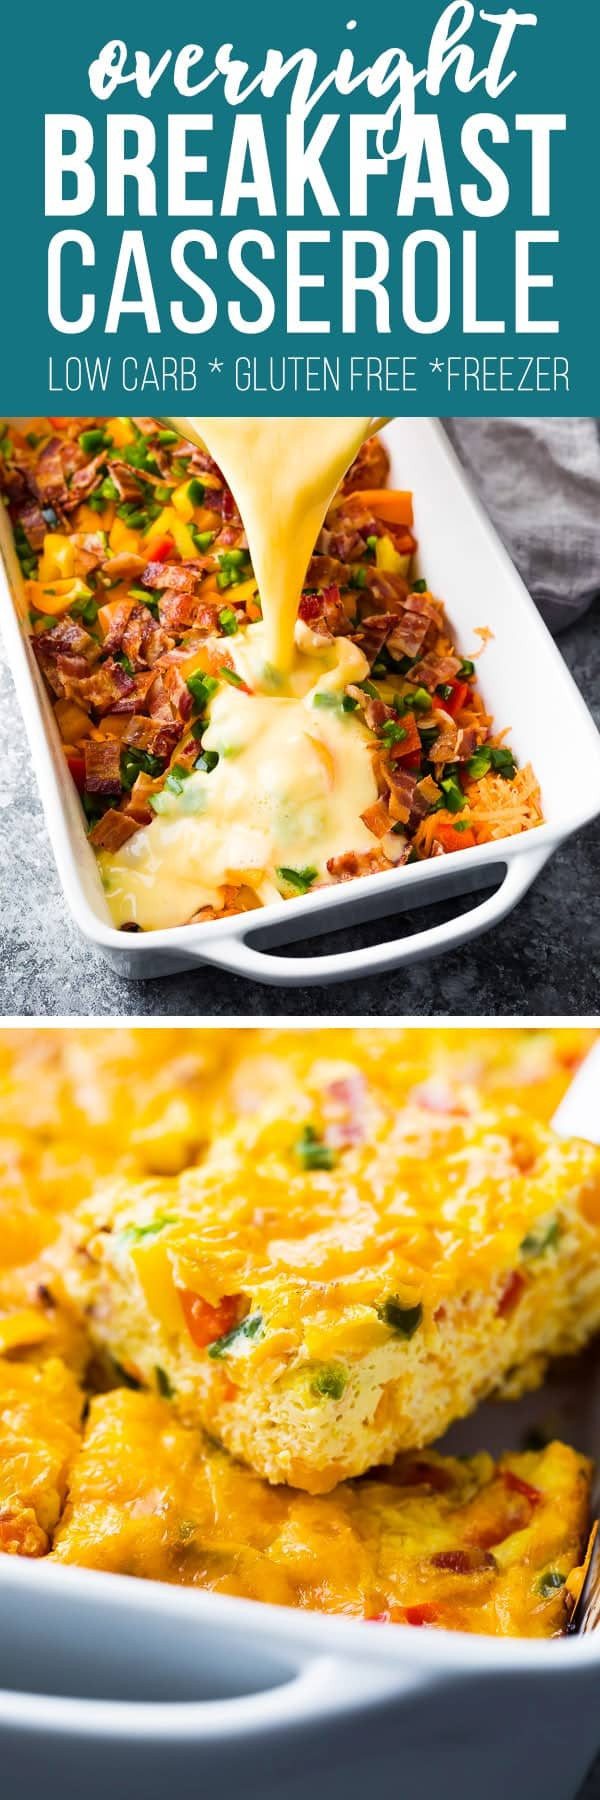 Overnight breakfast casserole with bacon and sweet potato is a healthy, hearty breakfast for a crowd! Assemble it the night before, refrigerate, then bake it up in the morning. Gluten-free and lower in carbs.